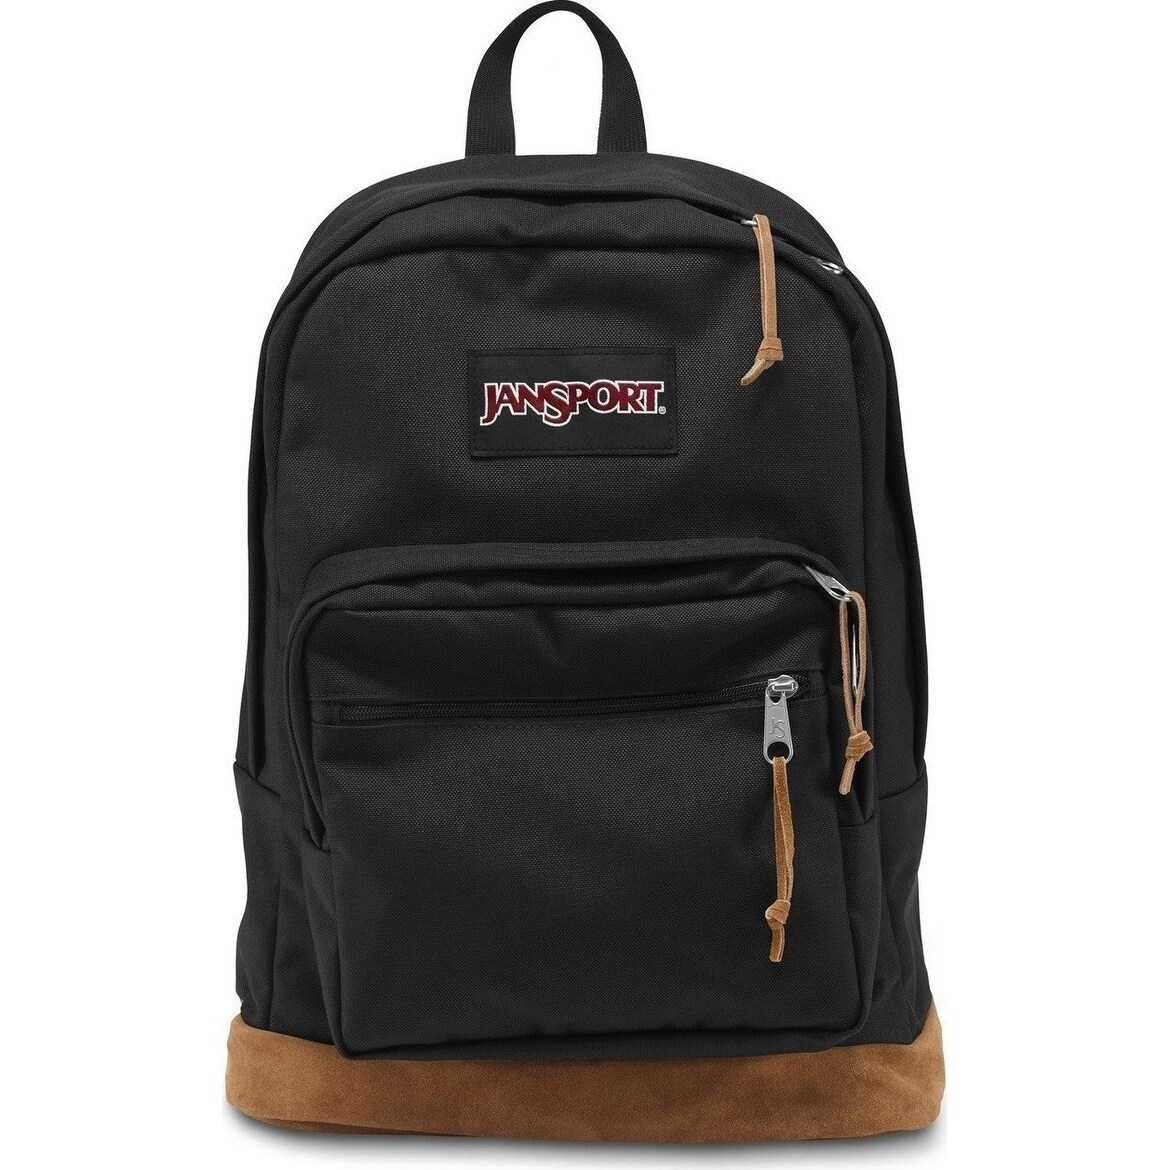 JANSPORT Right Pack Black, Size 7.1 - 10 Inches